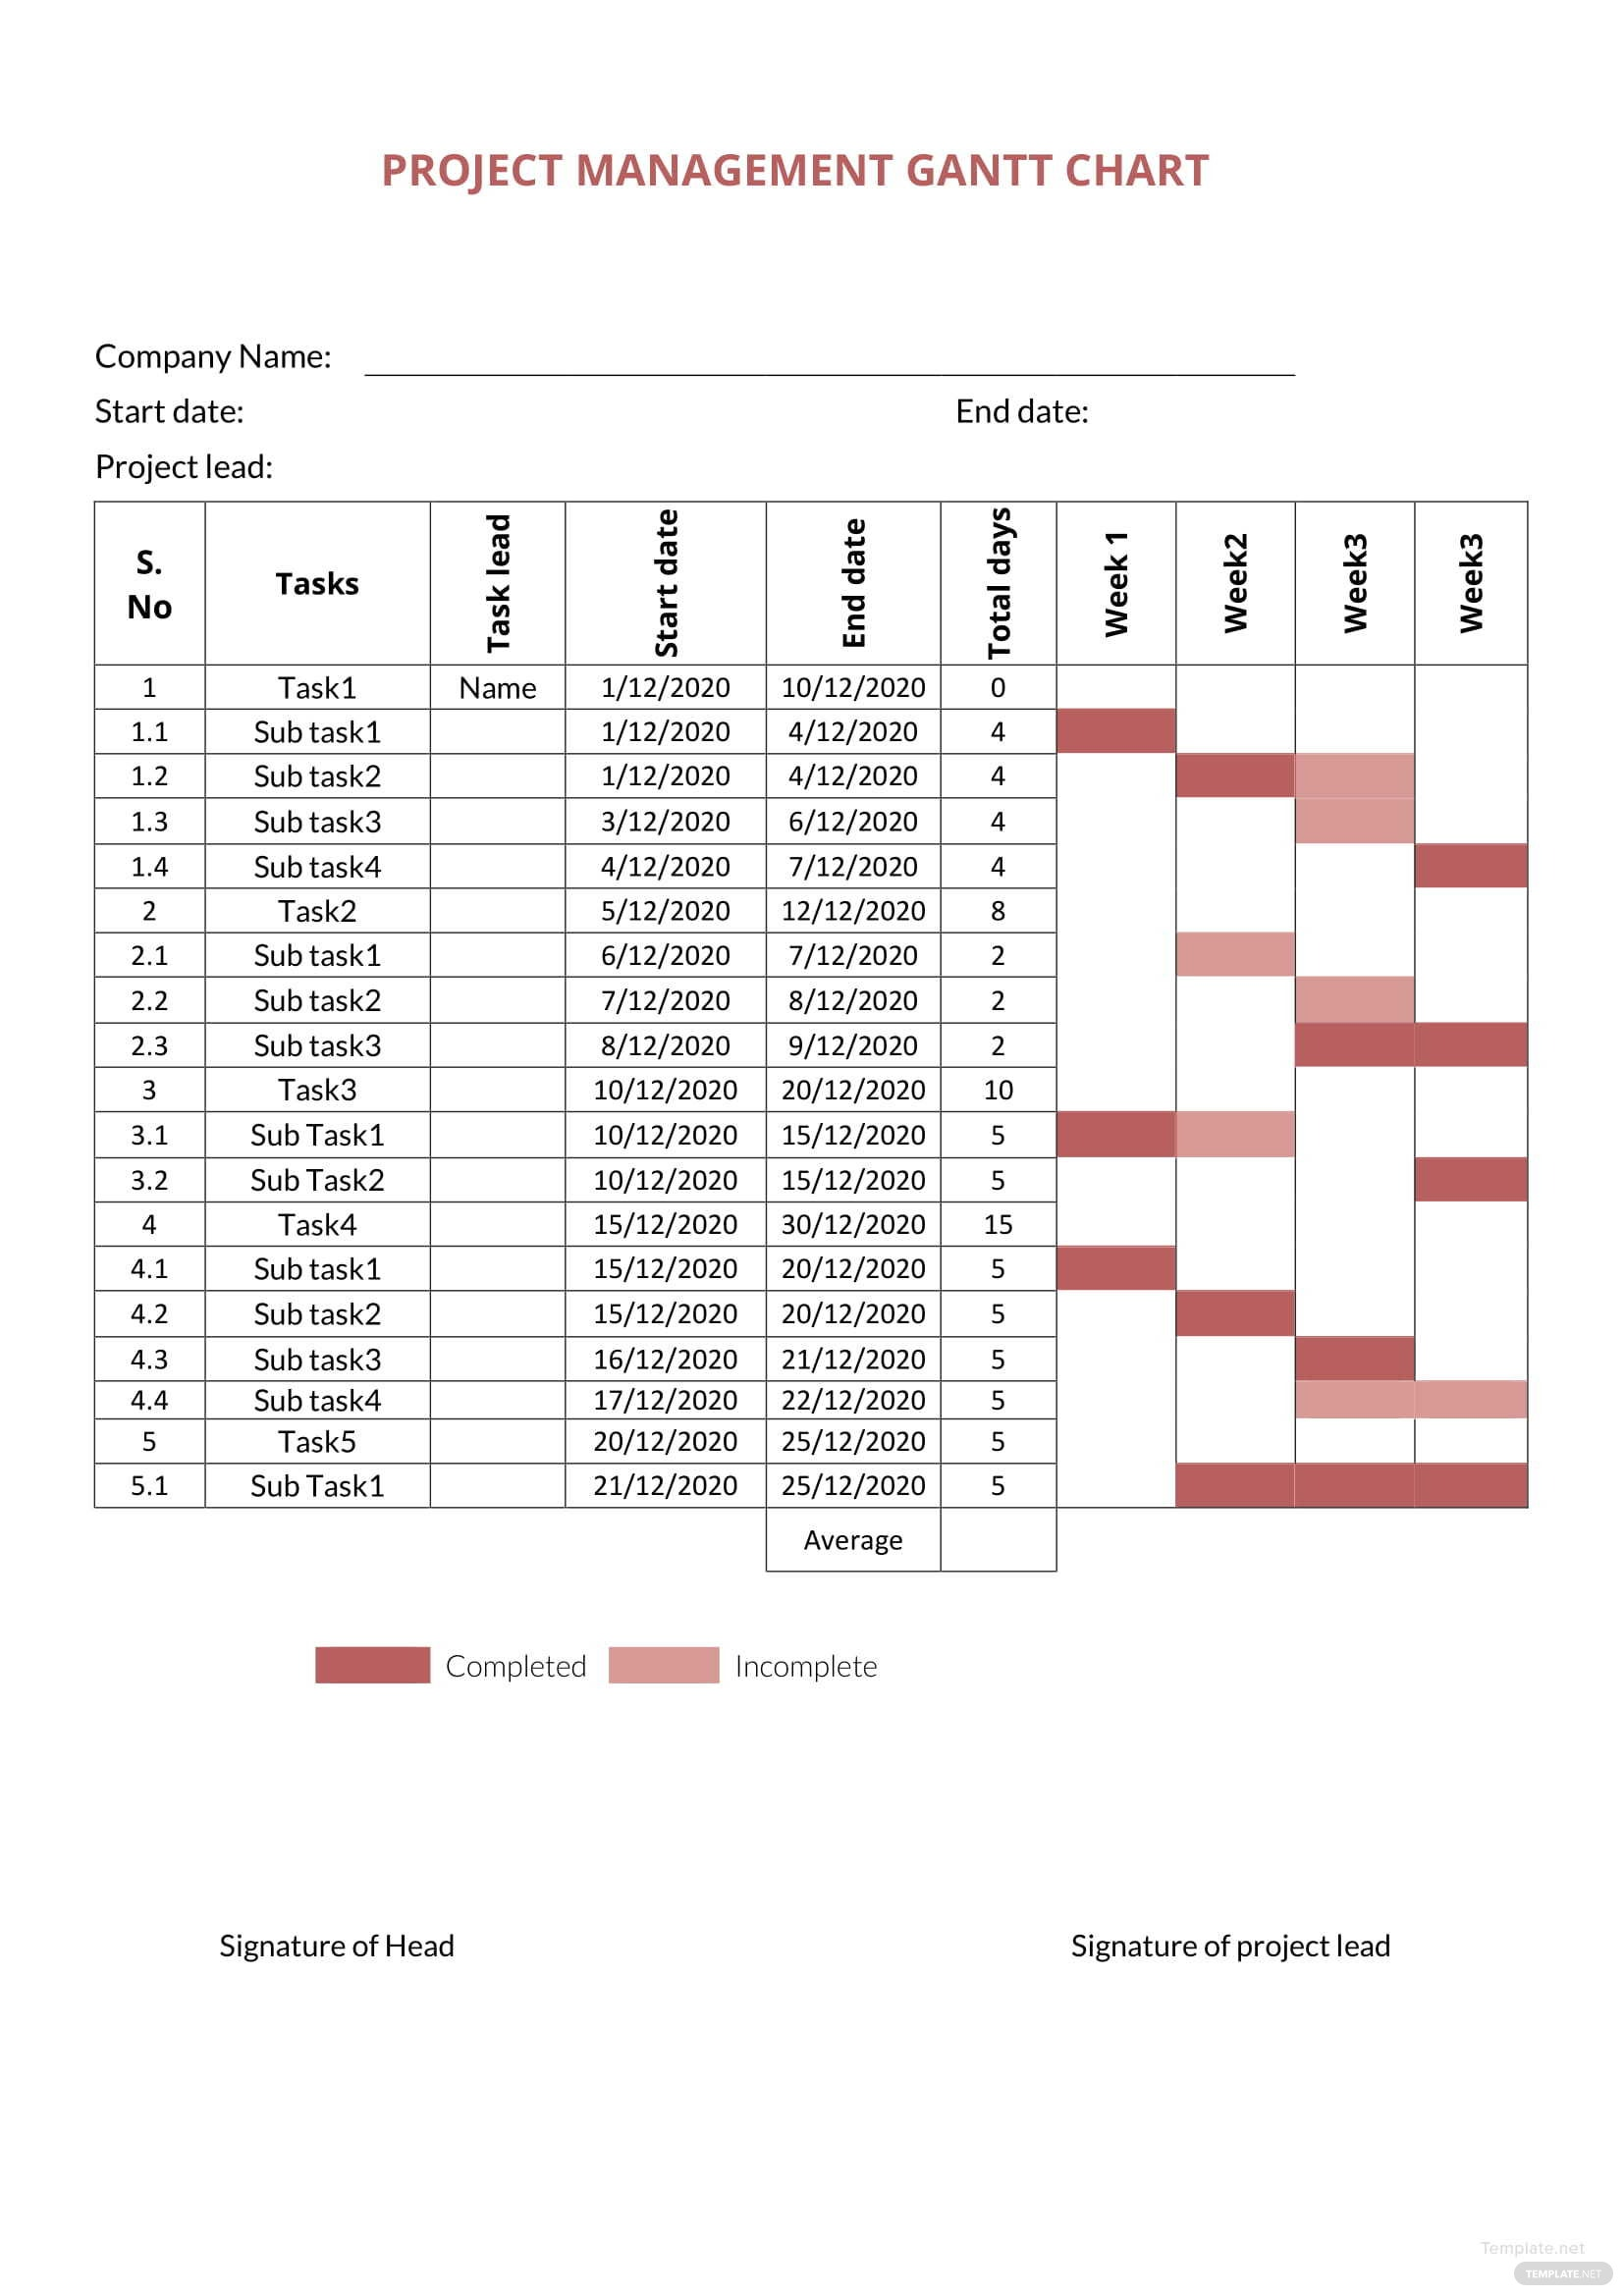 Project Management Gantt Chart Template In Microsoft Word